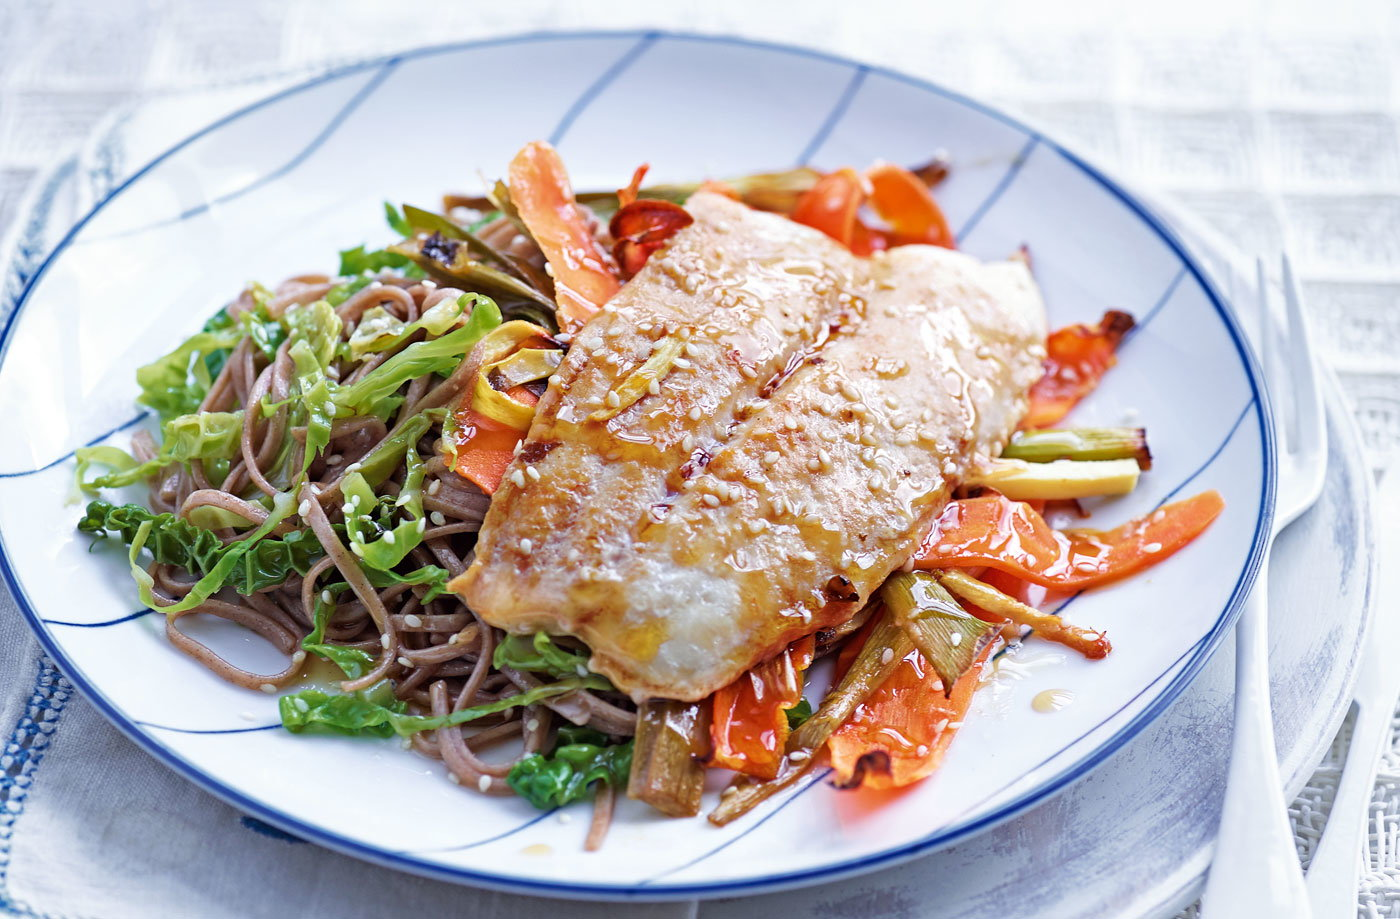 Miso fish with sesame noodles and greens